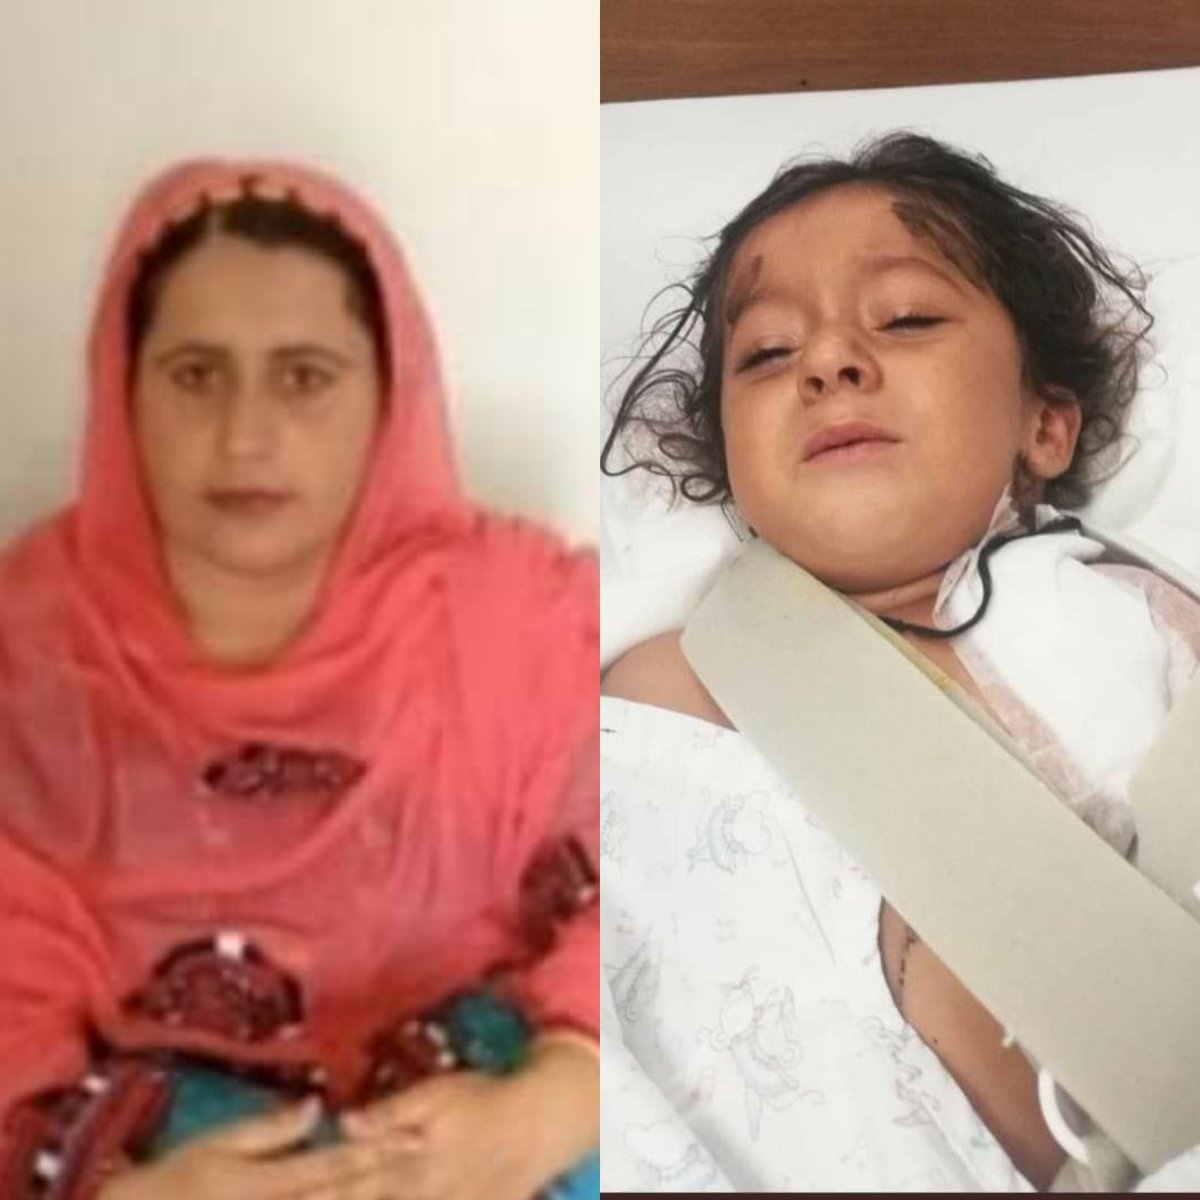 Why isn't there a single ticker on TV  channels on protests in many areas of Balochistan including Turbat, Panjgur, Buleda, Washuk & Pasni for 4-year-old Bramsh & her mother Maliknaz Baloch. Bramsh was shot & injured & mother killed in Dannuk, Kech. Isn't Balochistan in Pakistan? pic.twitter.com/gfmItR1YPi